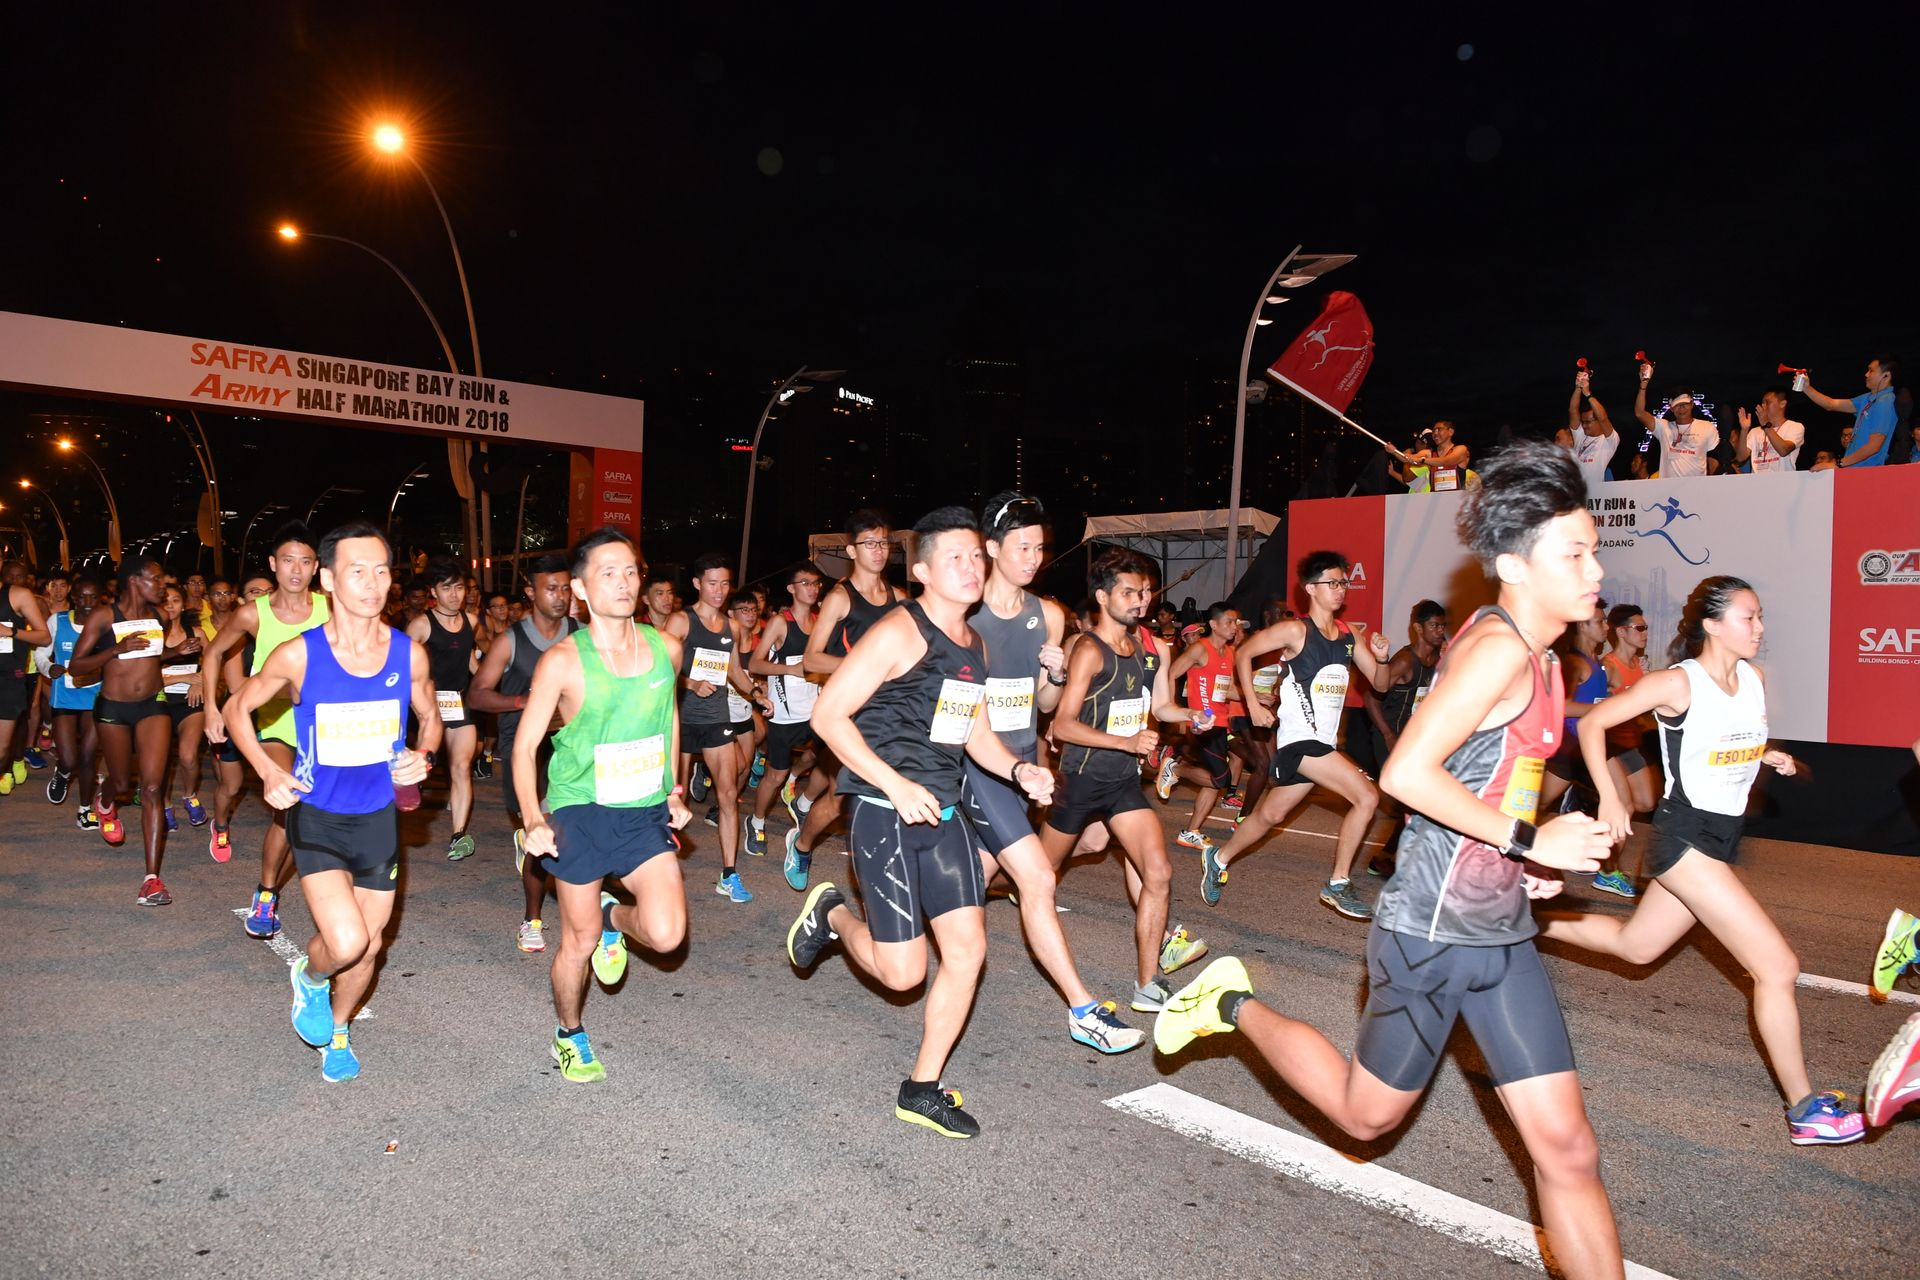 Largest number of SAF National Servicemen's families in SAFRA S'pore Bay Run and Army Half Marathon